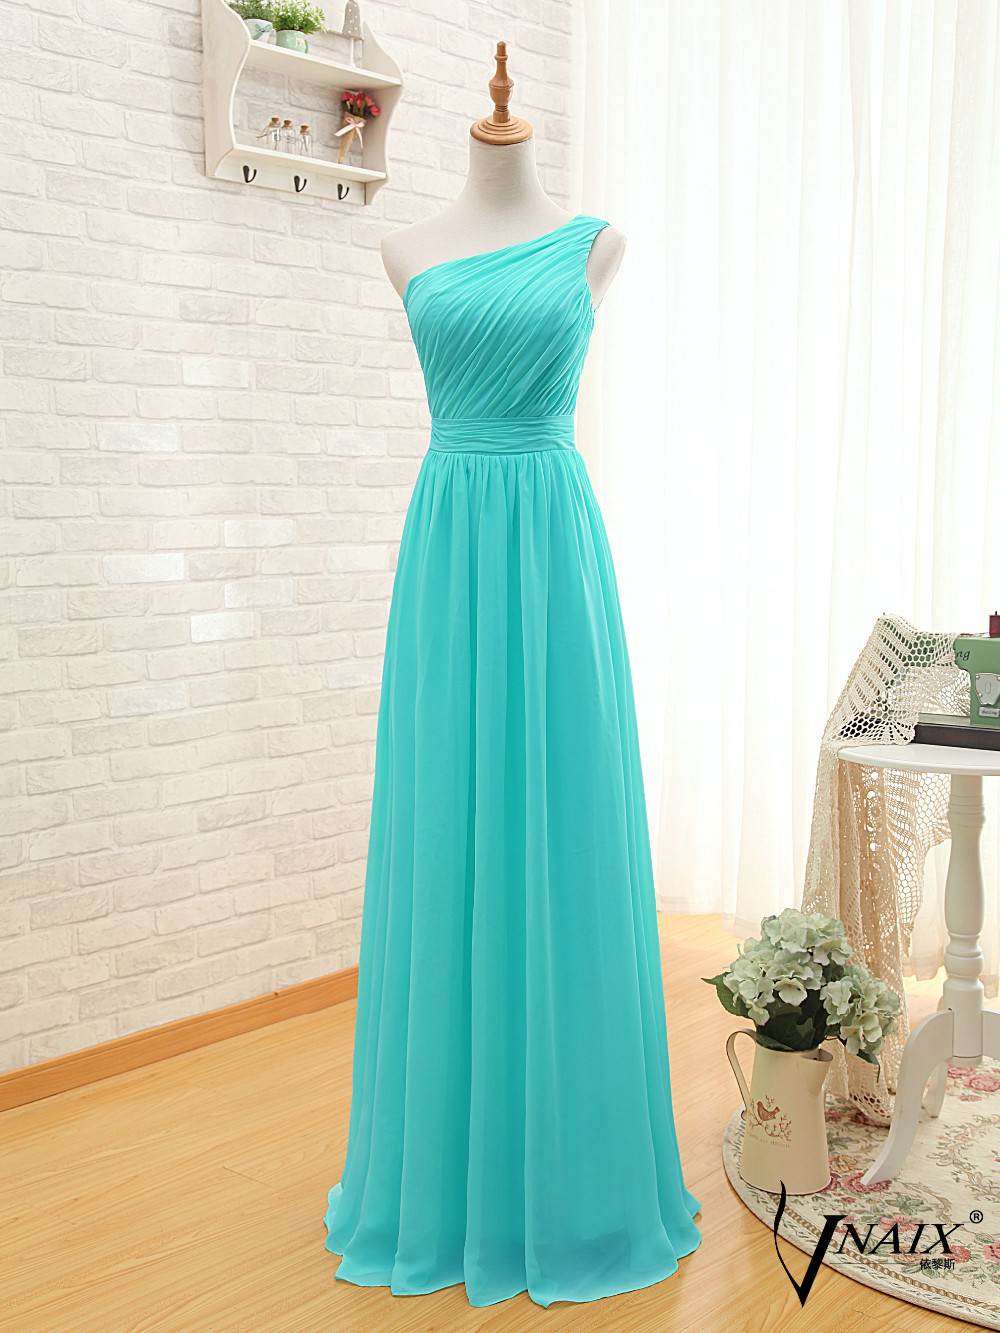 Compare prices on turquoise bridesmaid dresses chiffon online new simple elegant sleeveless one shoulder pleated top part a line long strapless chiffon turquoise ombrellifo Choice Image